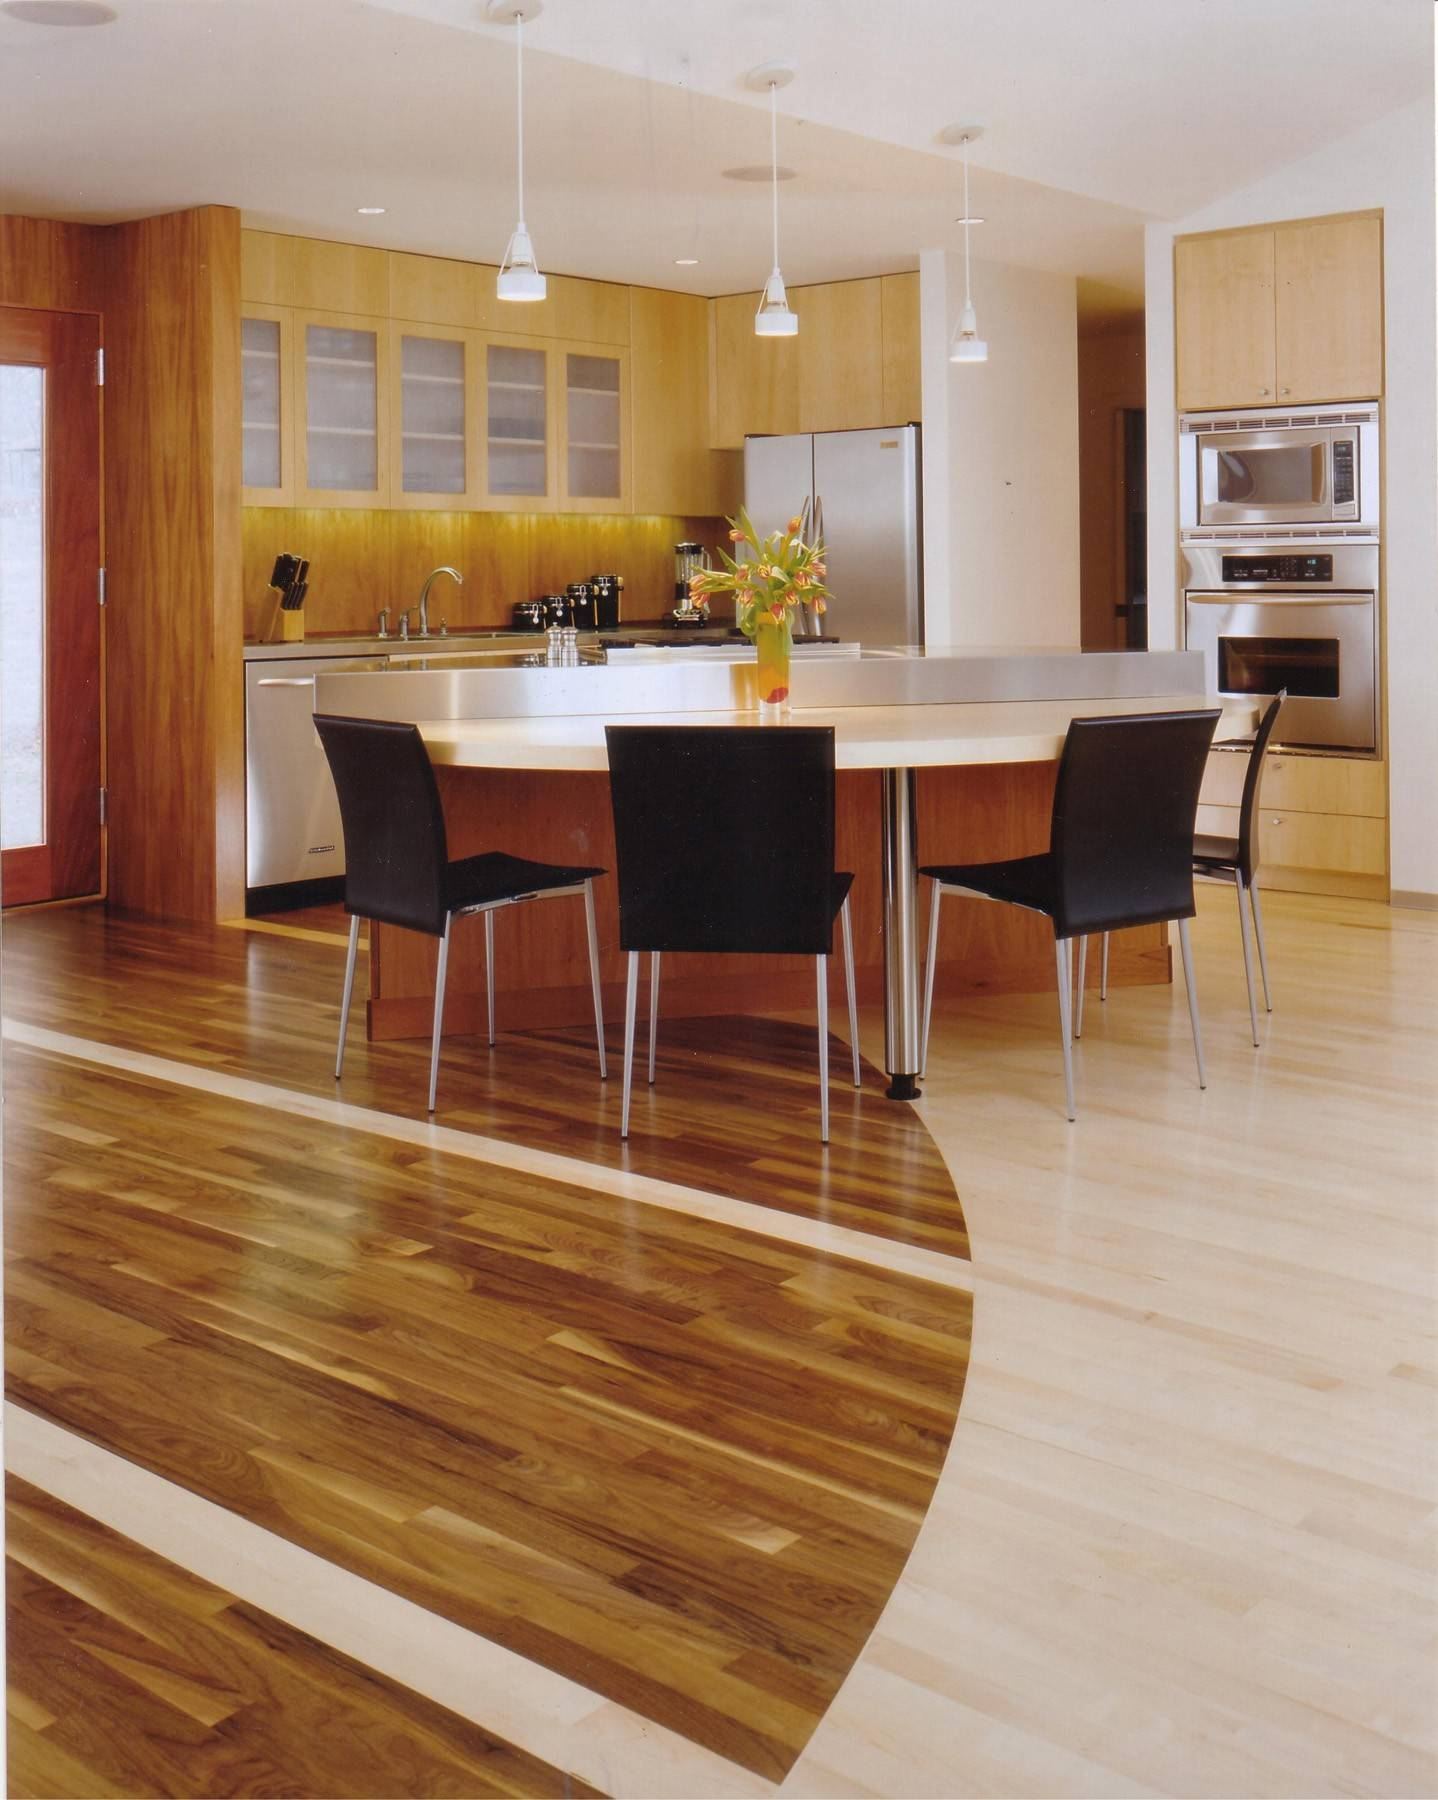 Bleached maple and walnut flooring have been installed in a graceful shape that helps to define two spaces in an open floor plan.